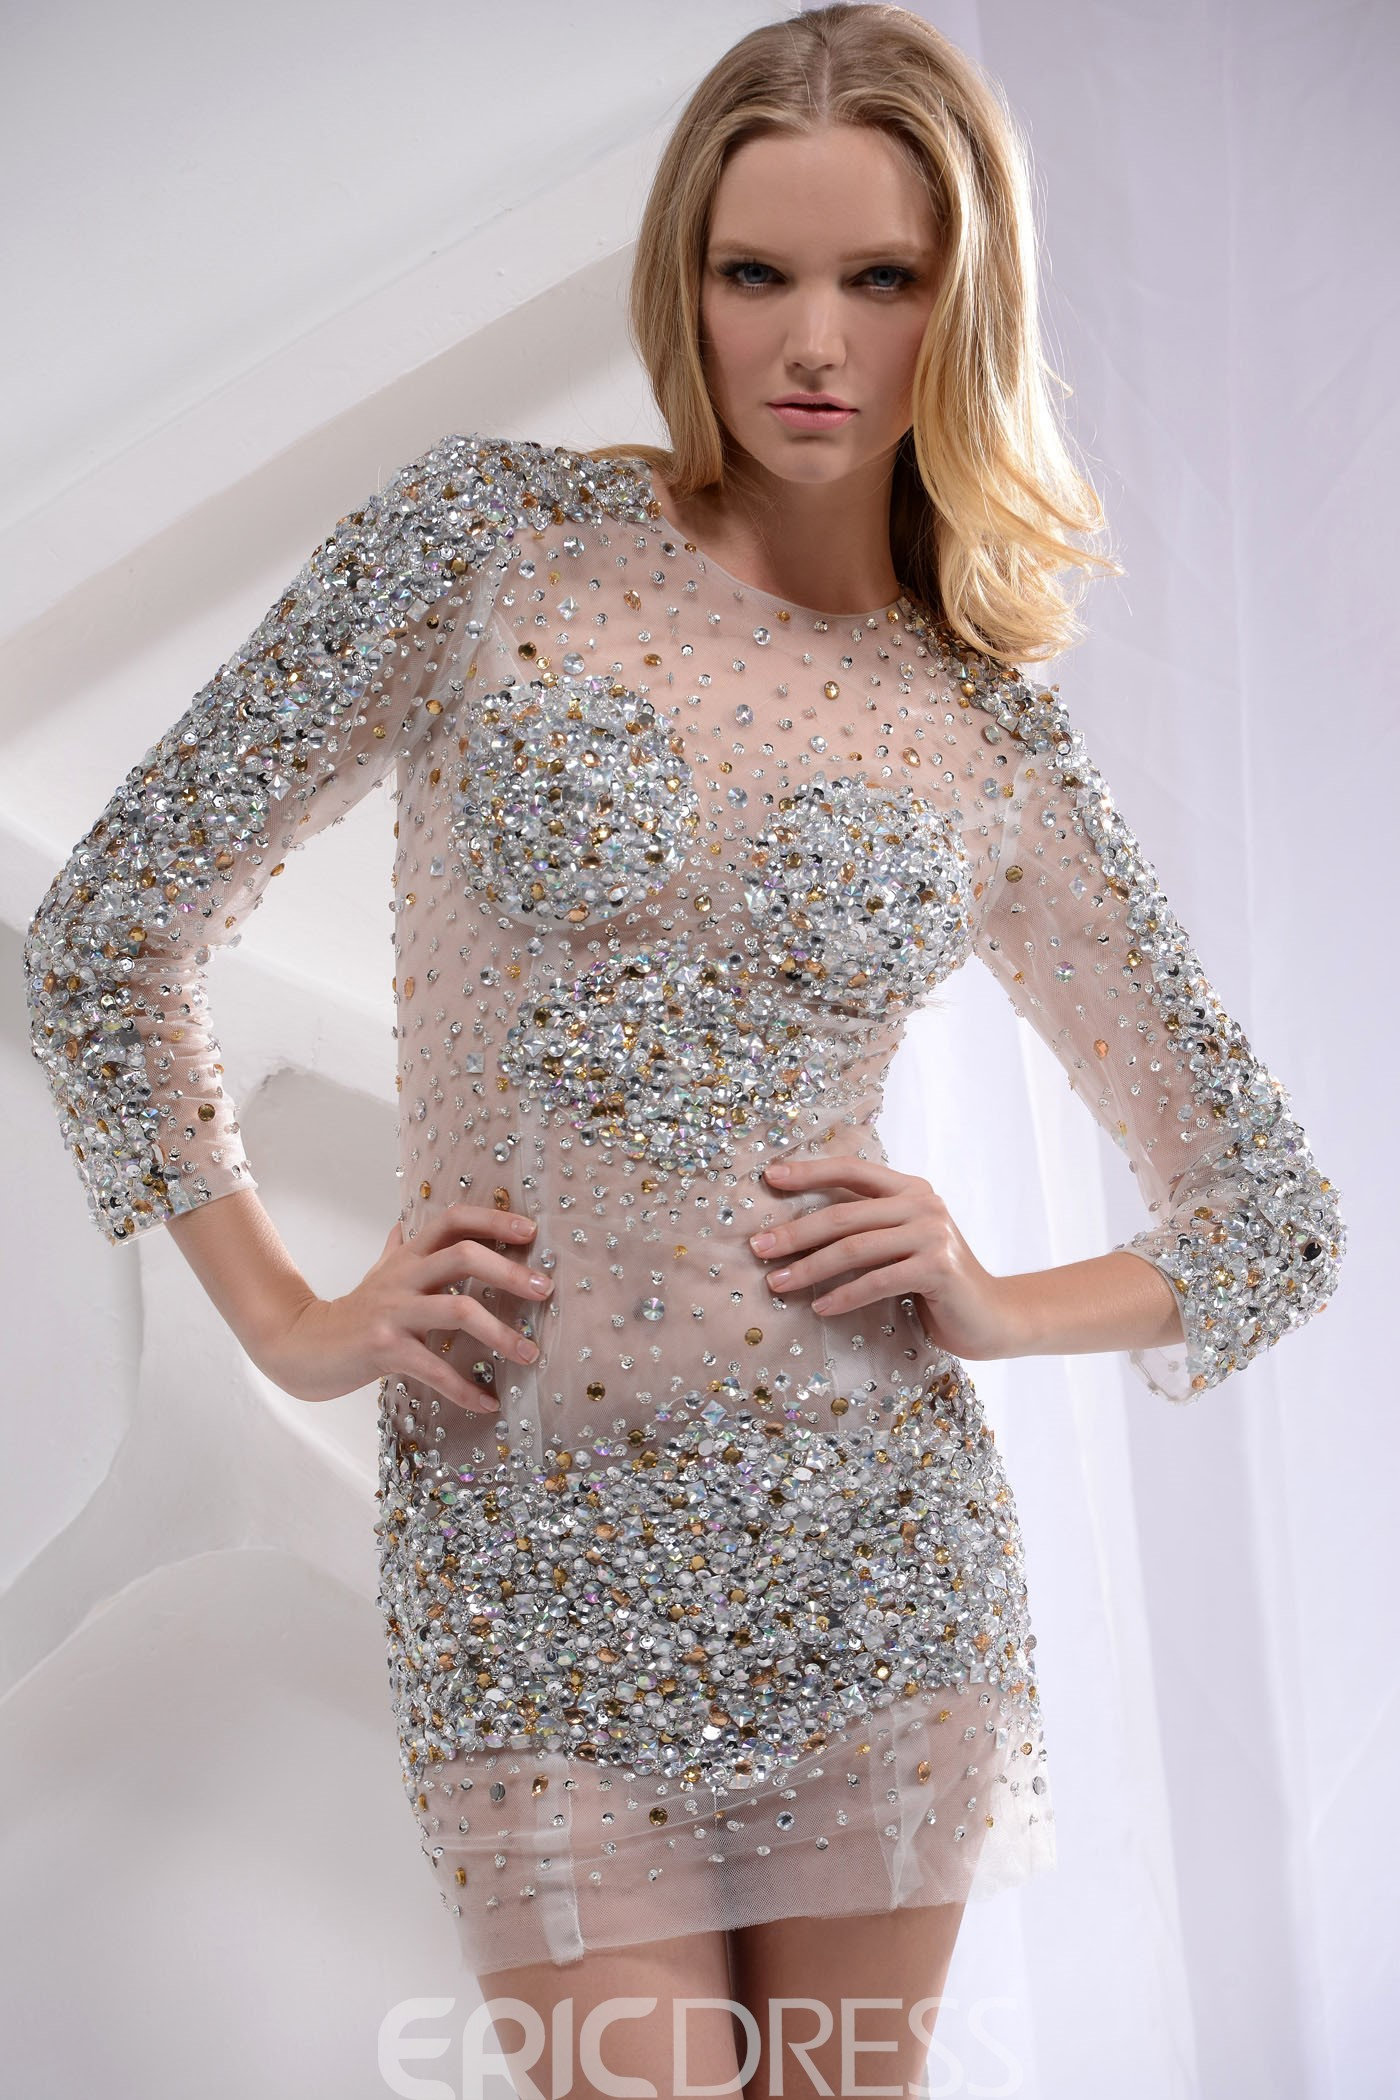 Ericdress Sheath Bateau Crystal Sequins Cocktail Dress With Long Sleeve